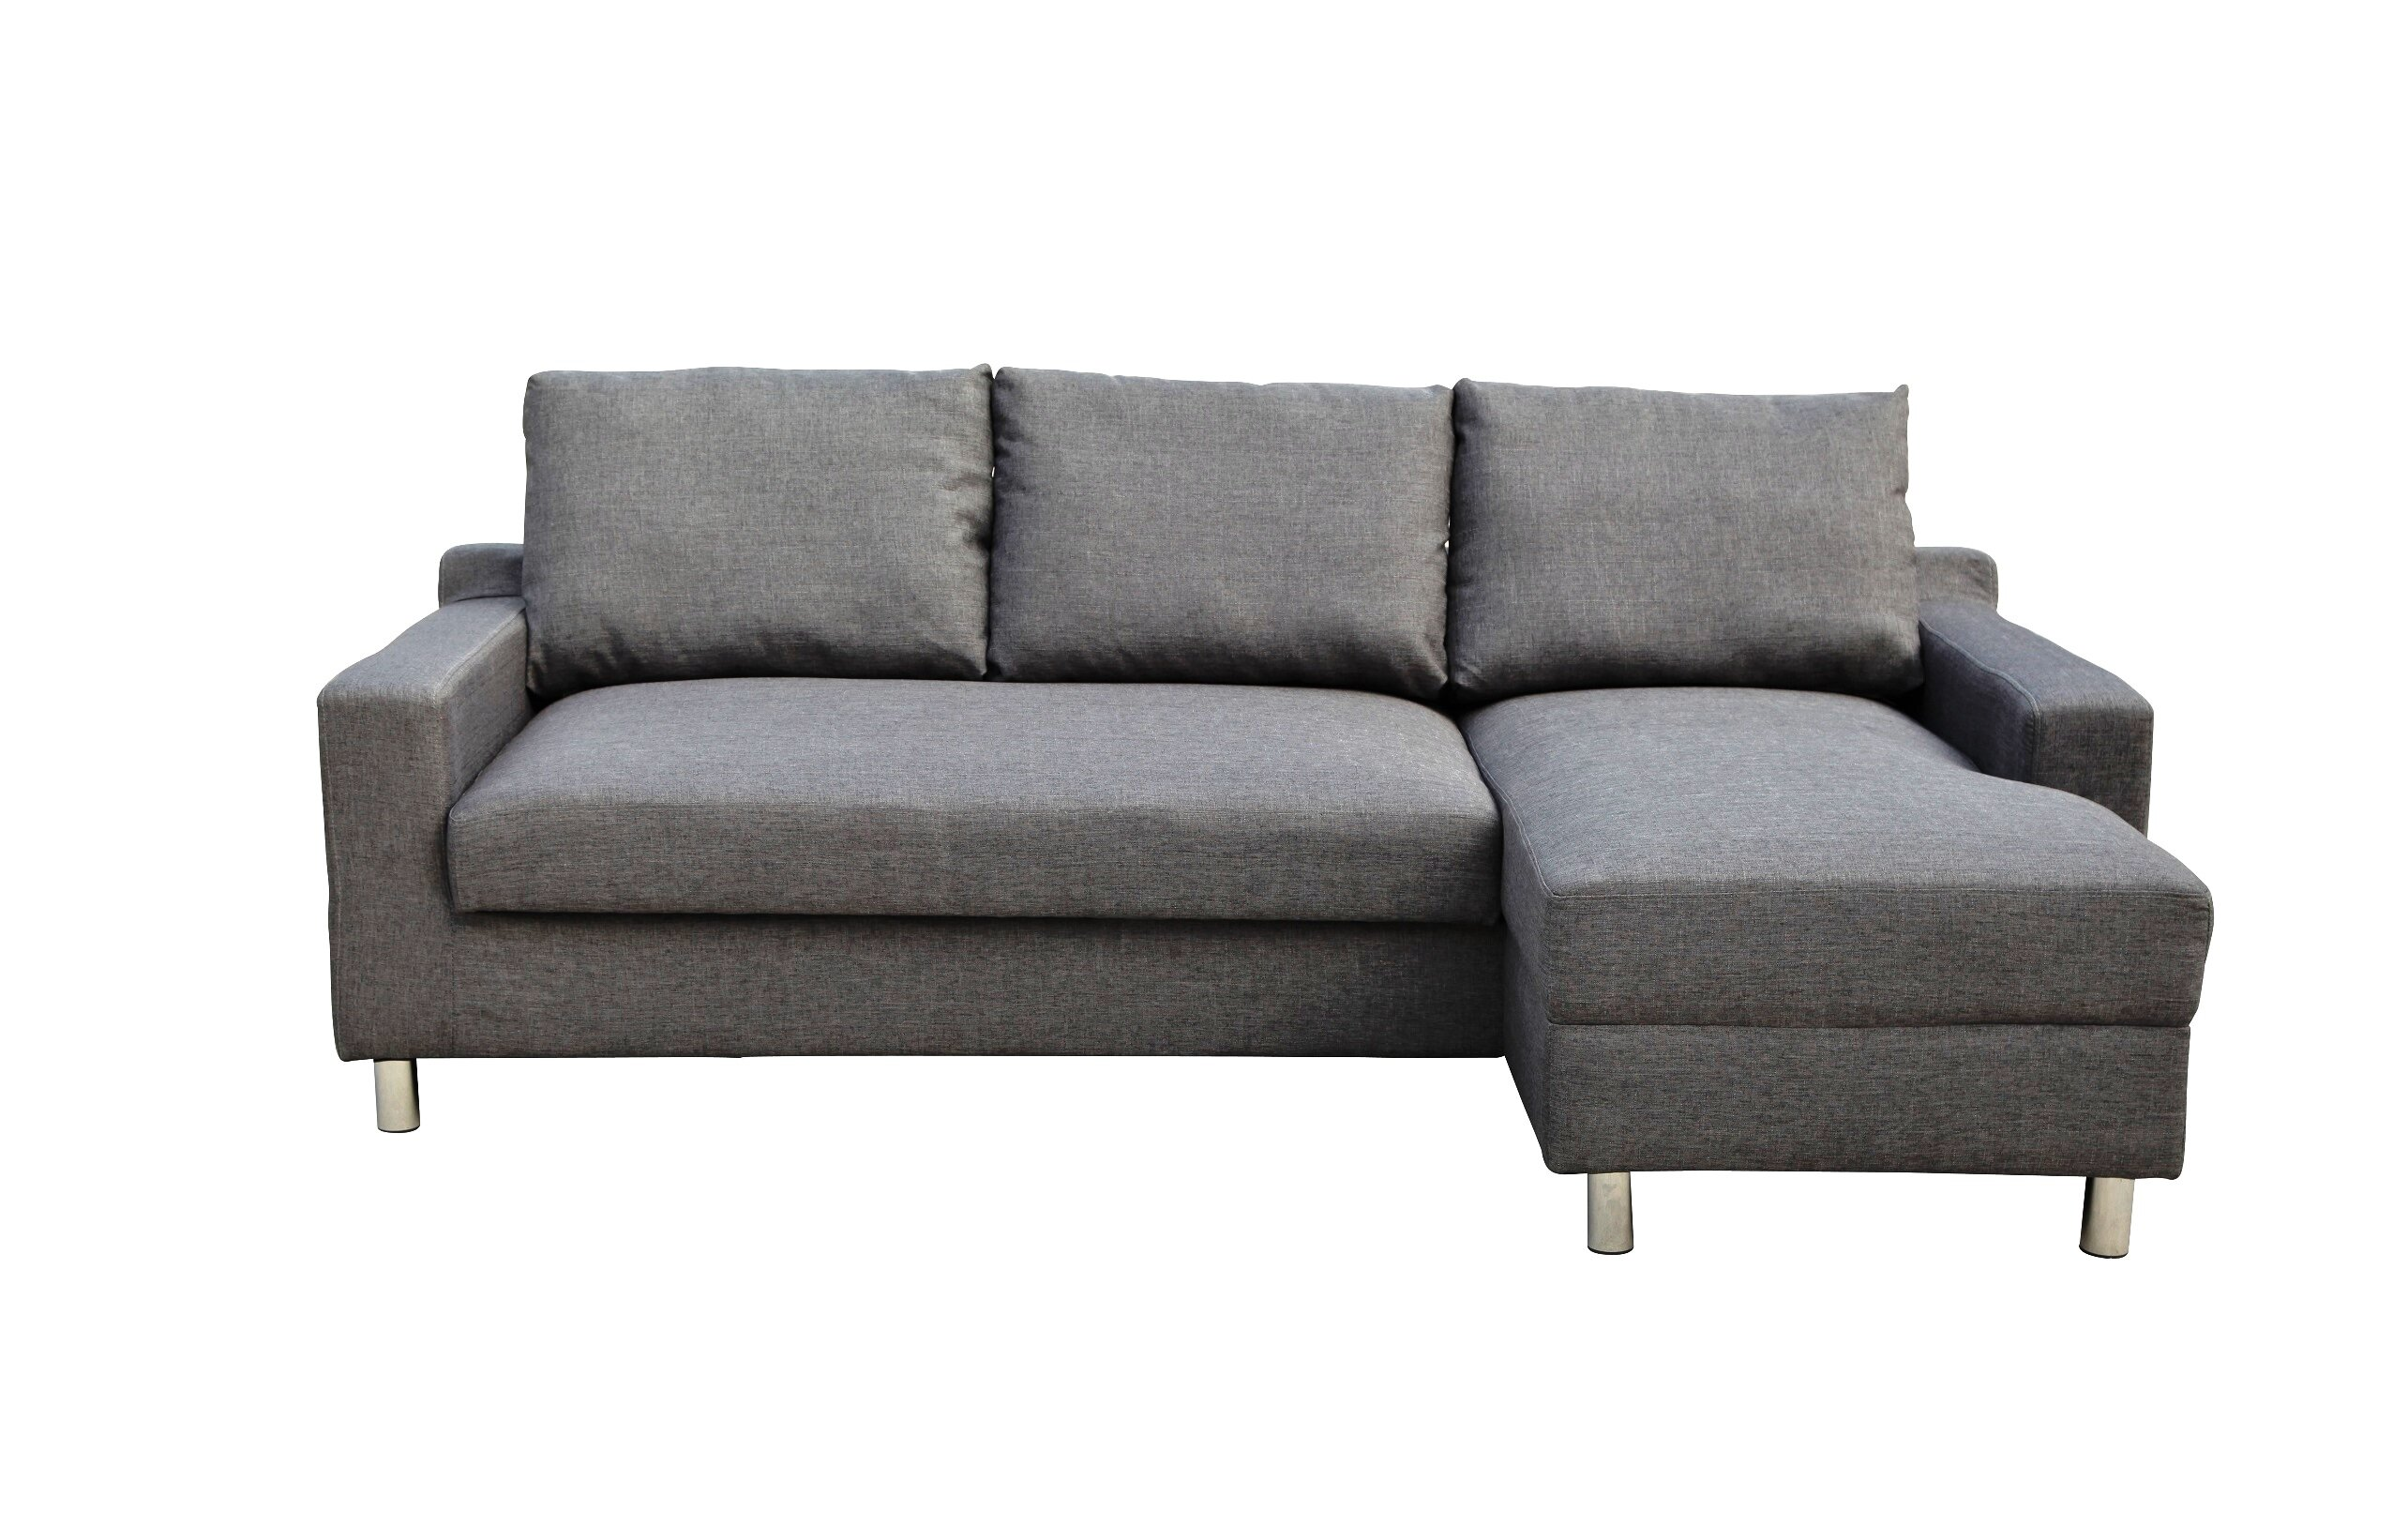 Wade Logan Lainey Sectional Sofabed Grey Right Facing | Wayfair